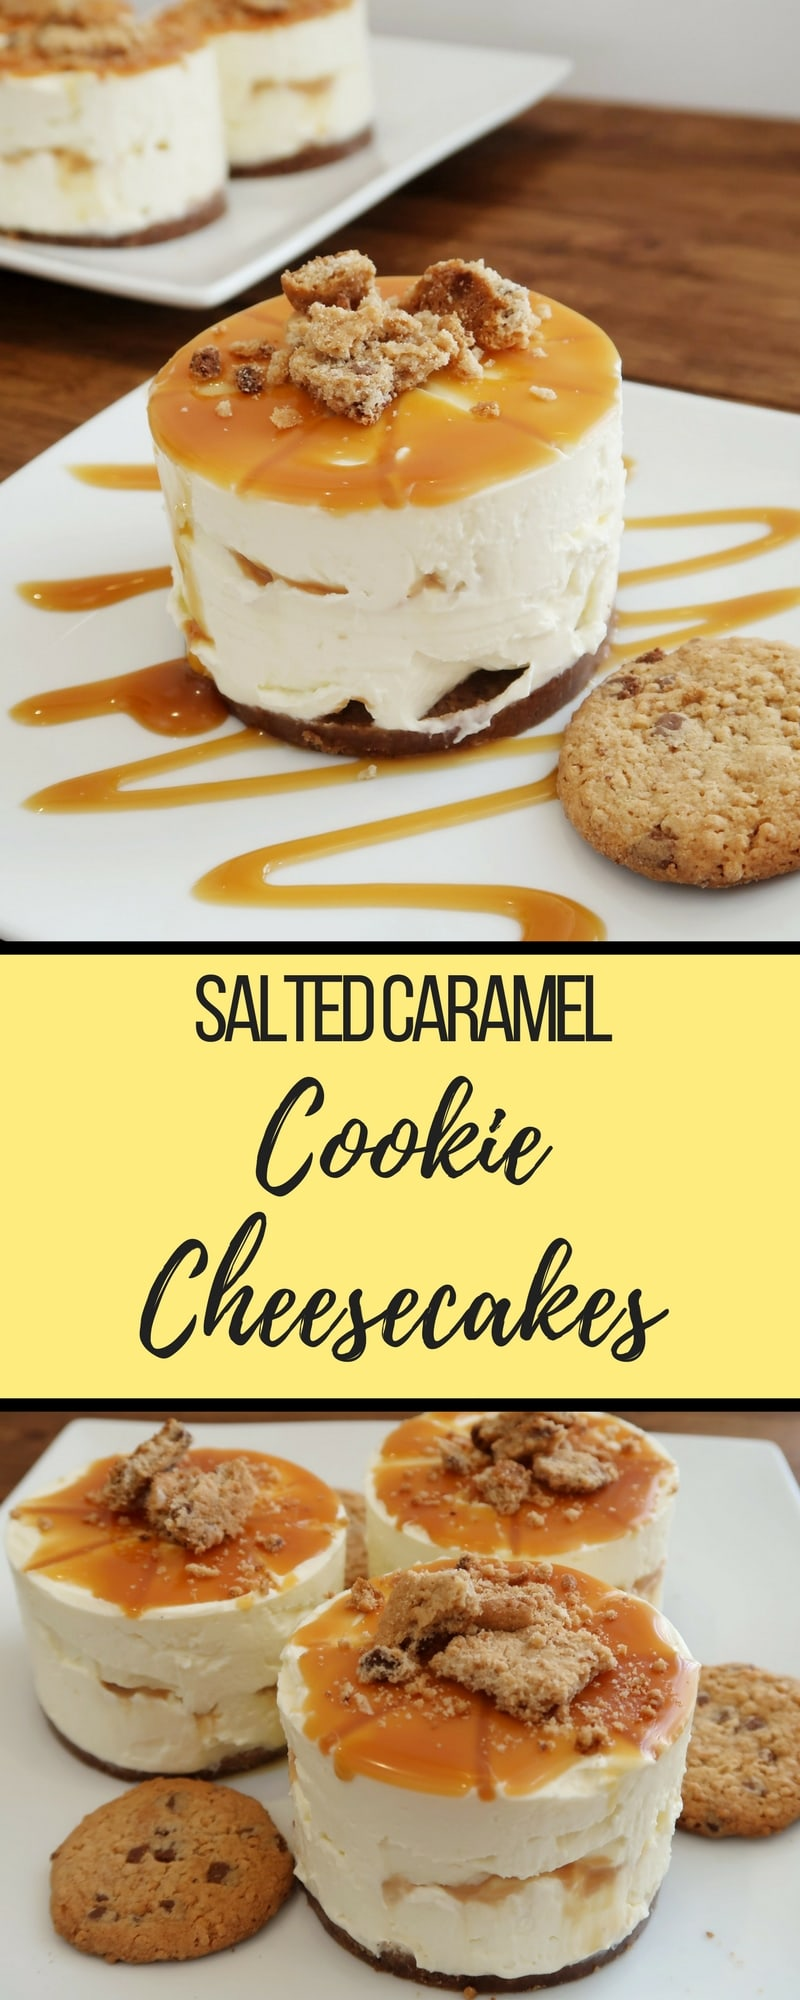 Salted-Caramel-Cookie-Cheesecake-recipe.-Create-these-no-bake-cheesecakes-using-salted-caramel-cookies-cheesecake-saltedcaramel-desserts.jpg